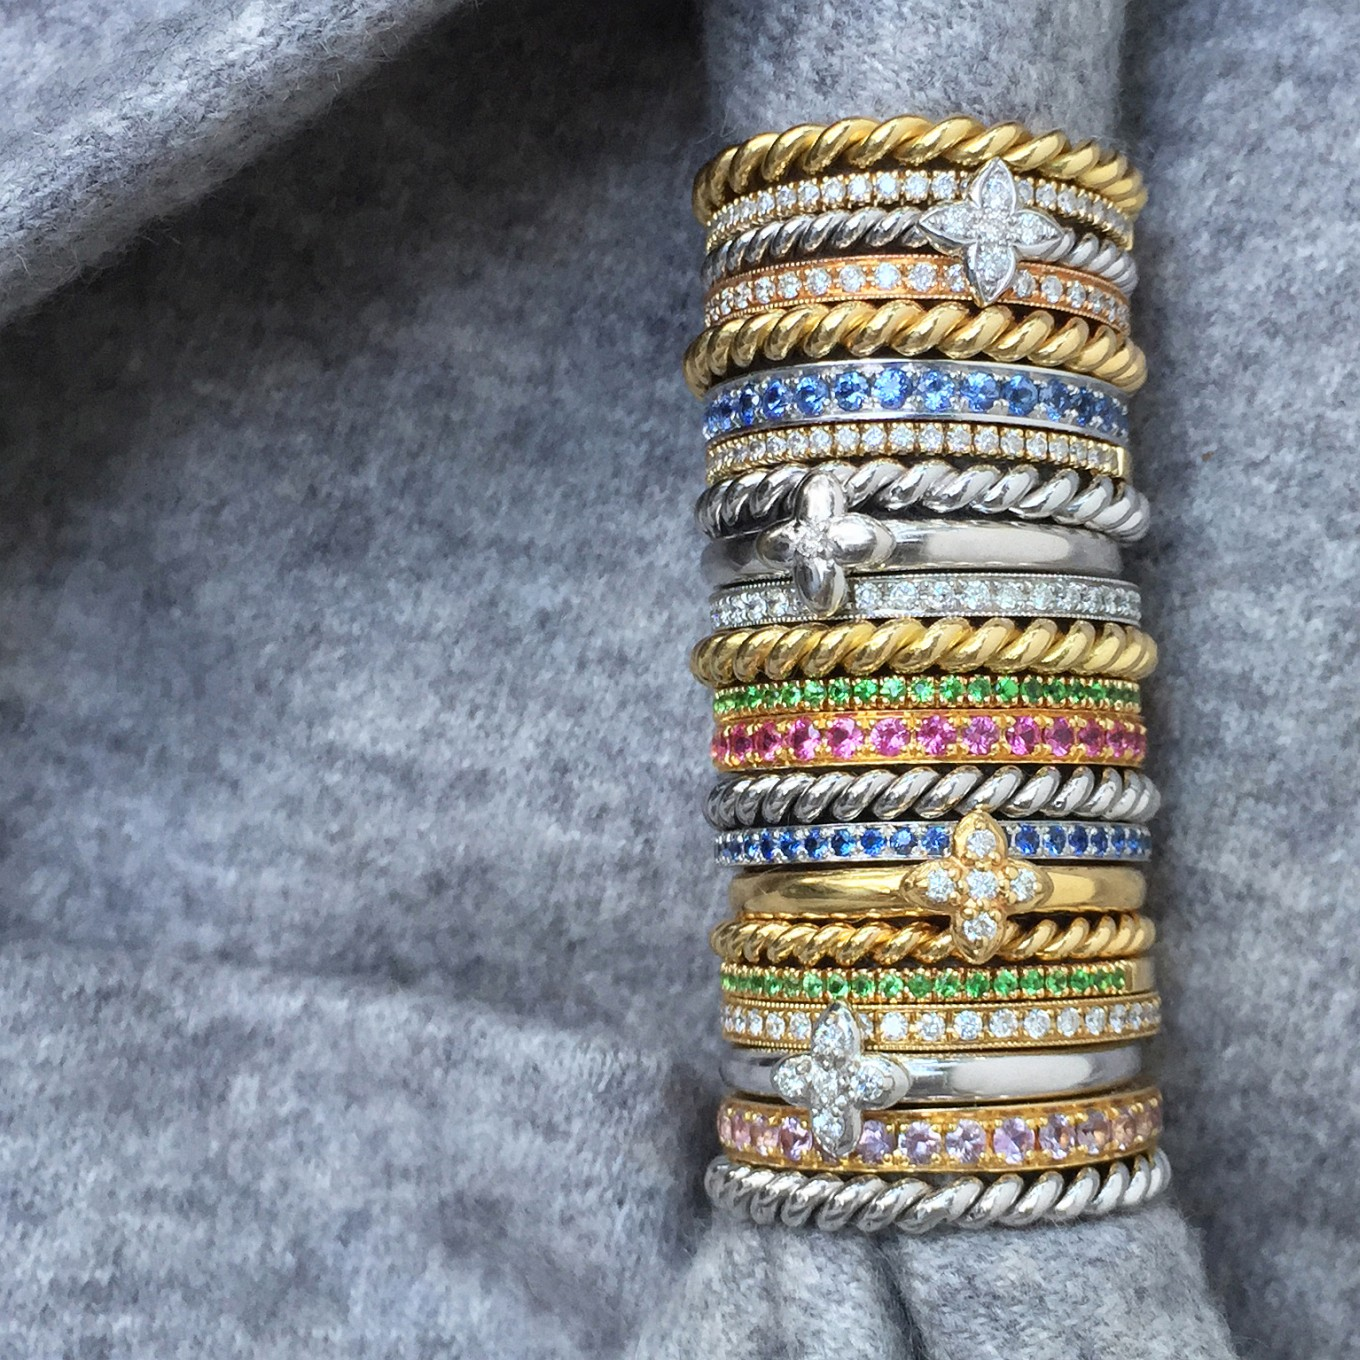 GEMSTONE, DIAMOND & BRAIDED BANDS IN STERLING SILVER, WHITE GOLD & YELLOW GOLD